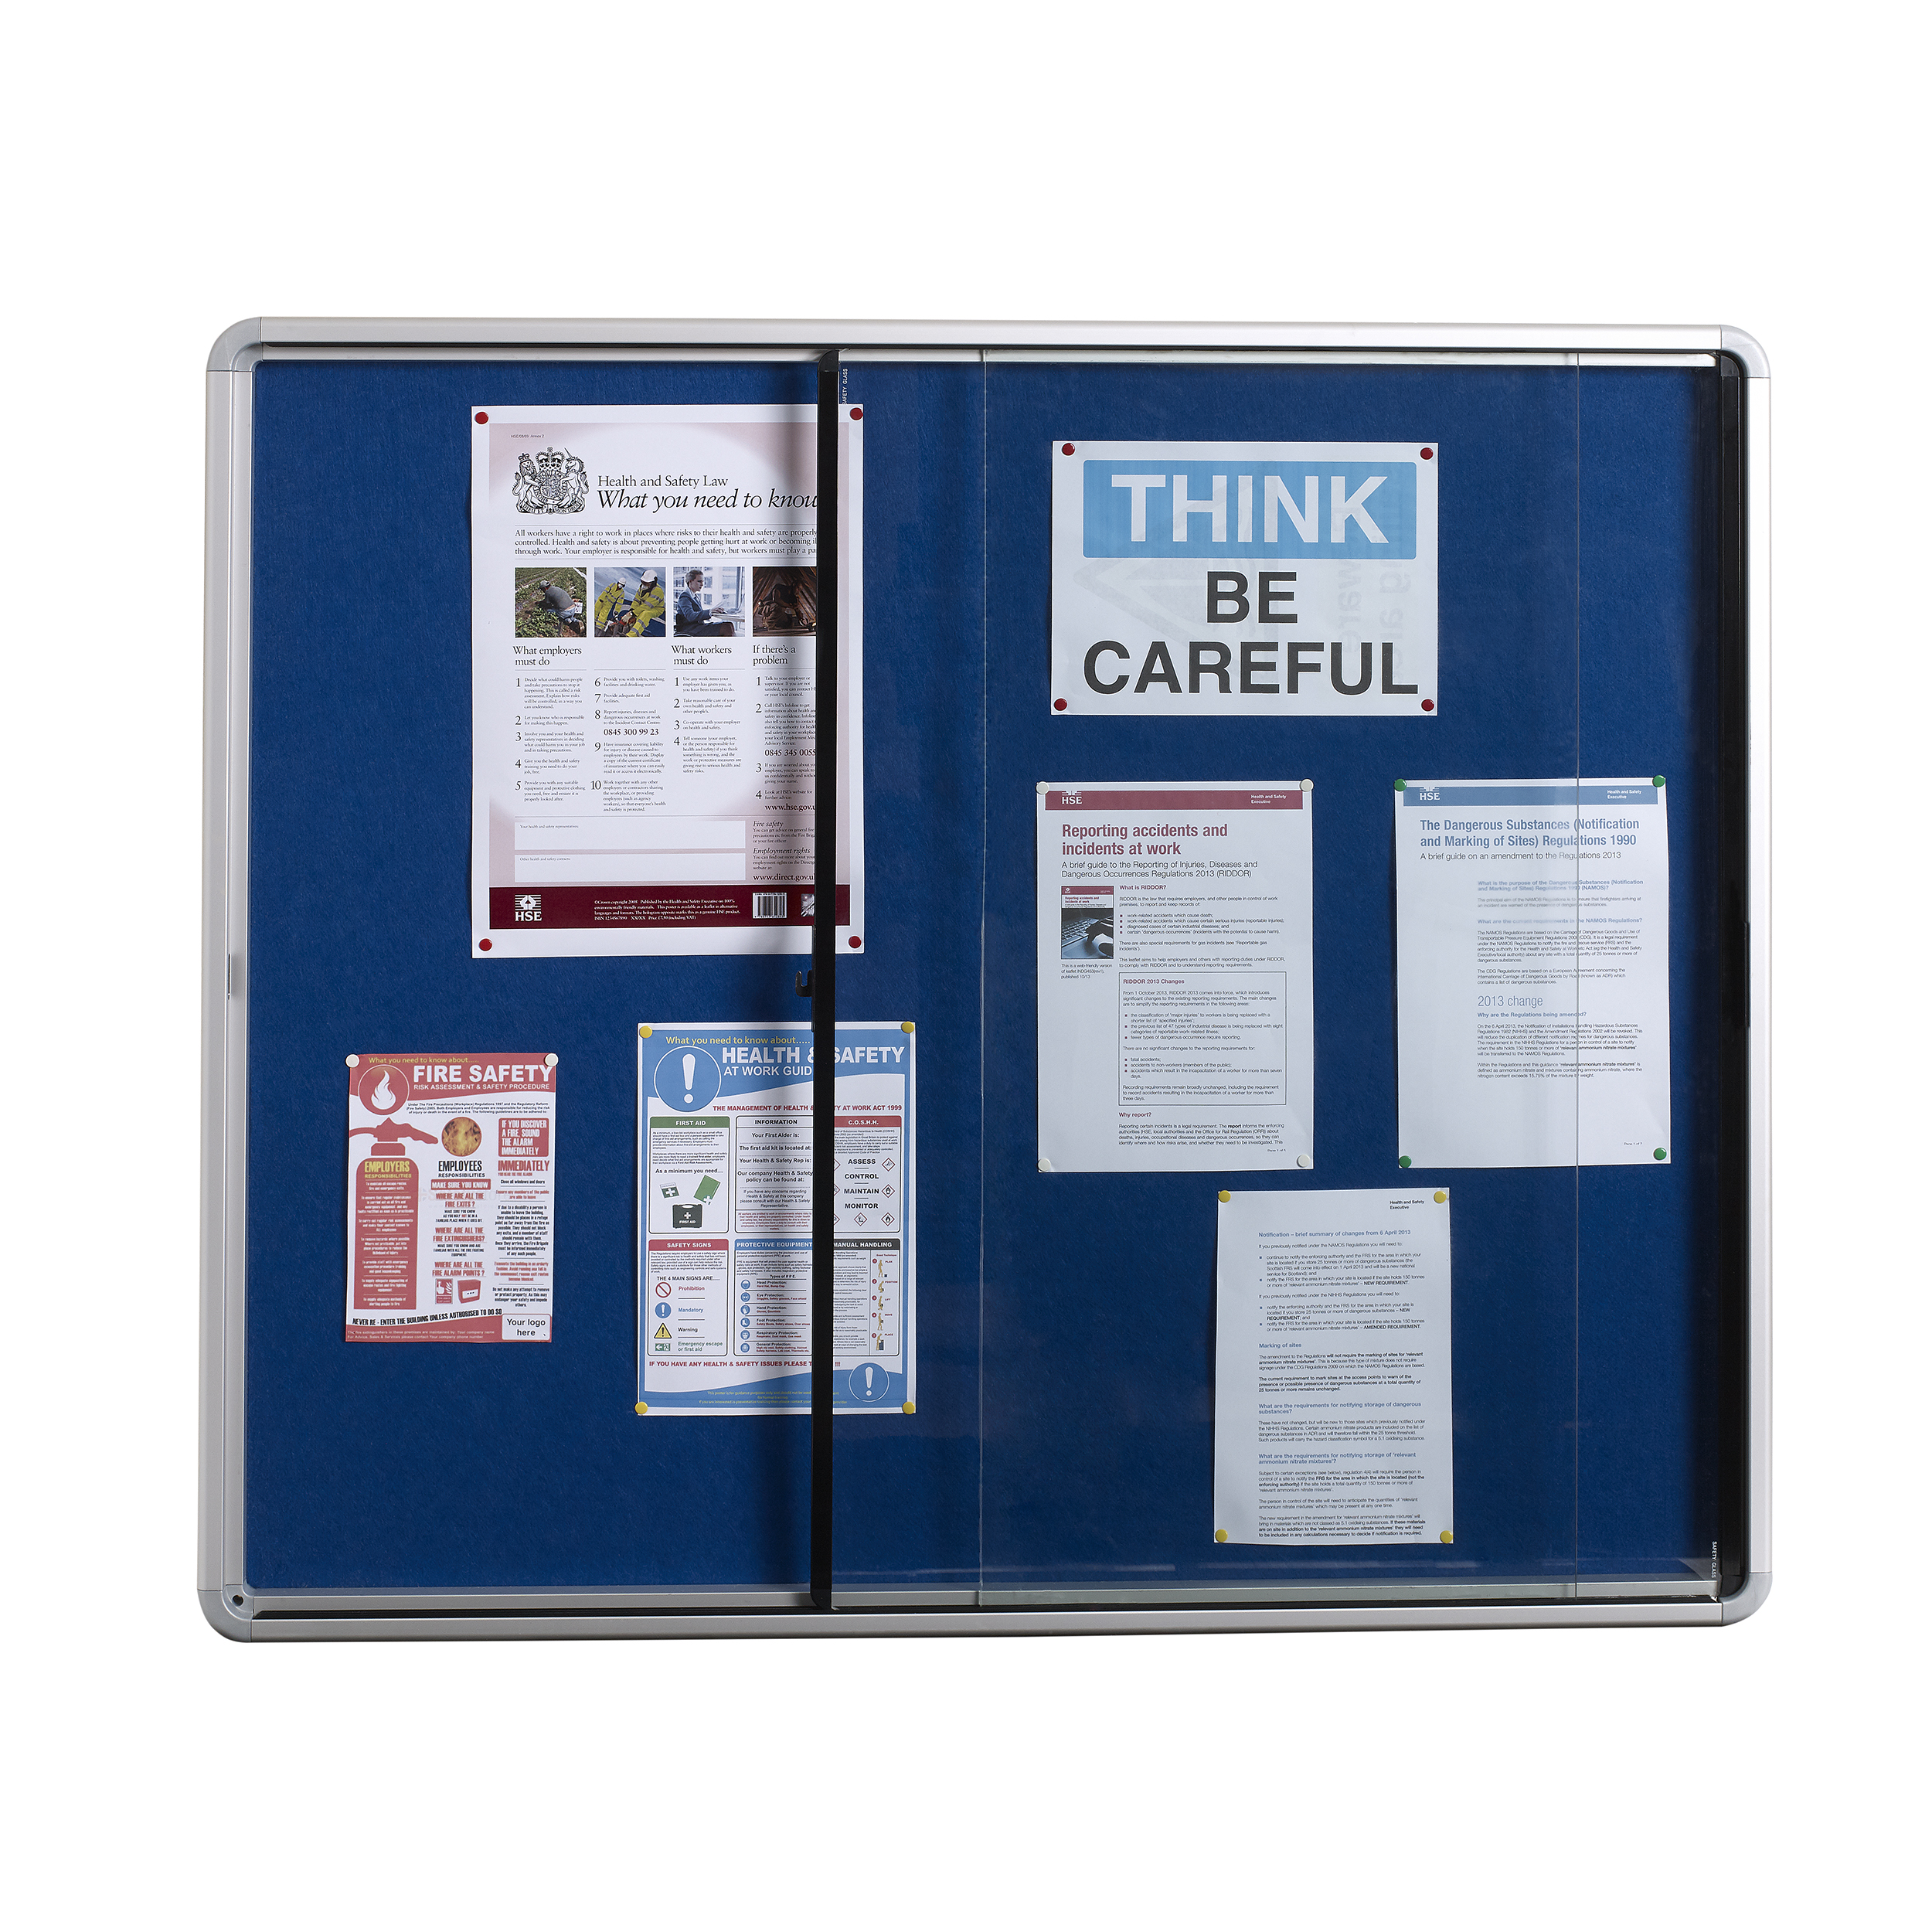 Glazed 5 Star Glazed Noticeboard with sliding Door Locking Alumin Frame Blue Felt 900x1200mm